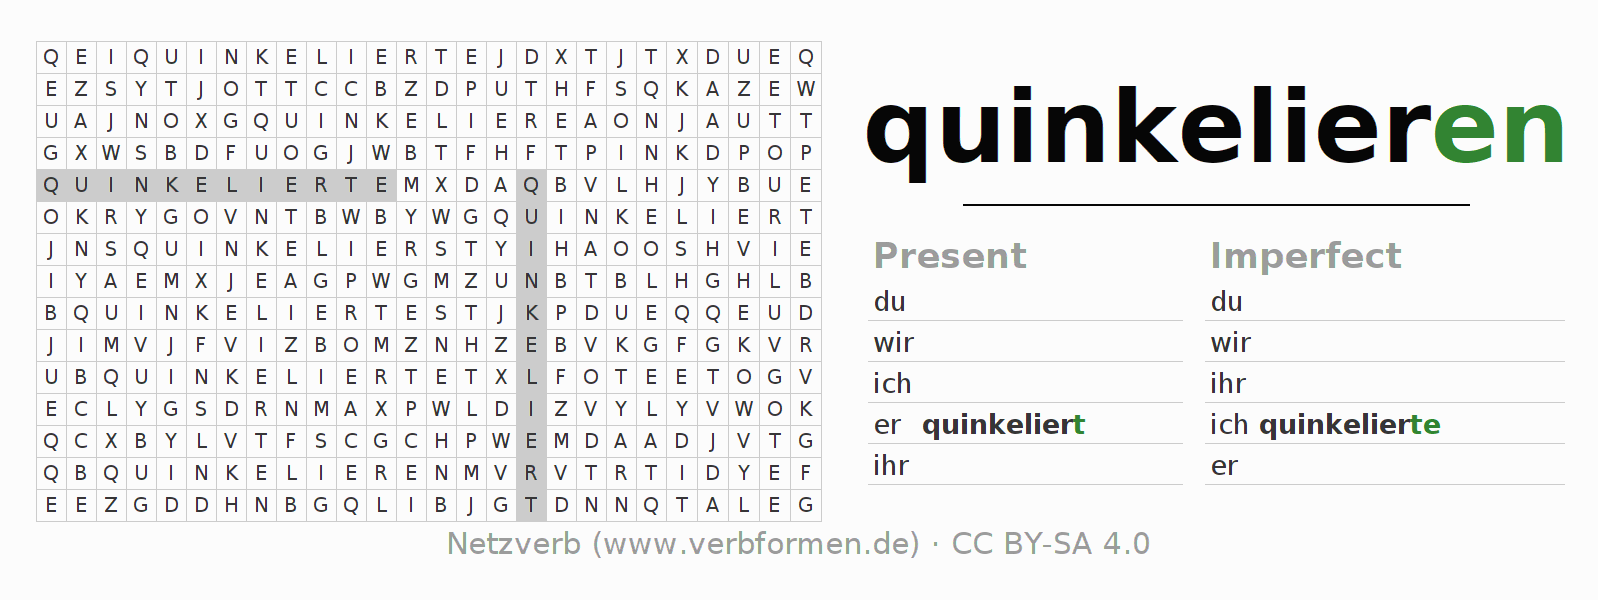 Word search puzzle for the conjugation of the verb quinkelieren